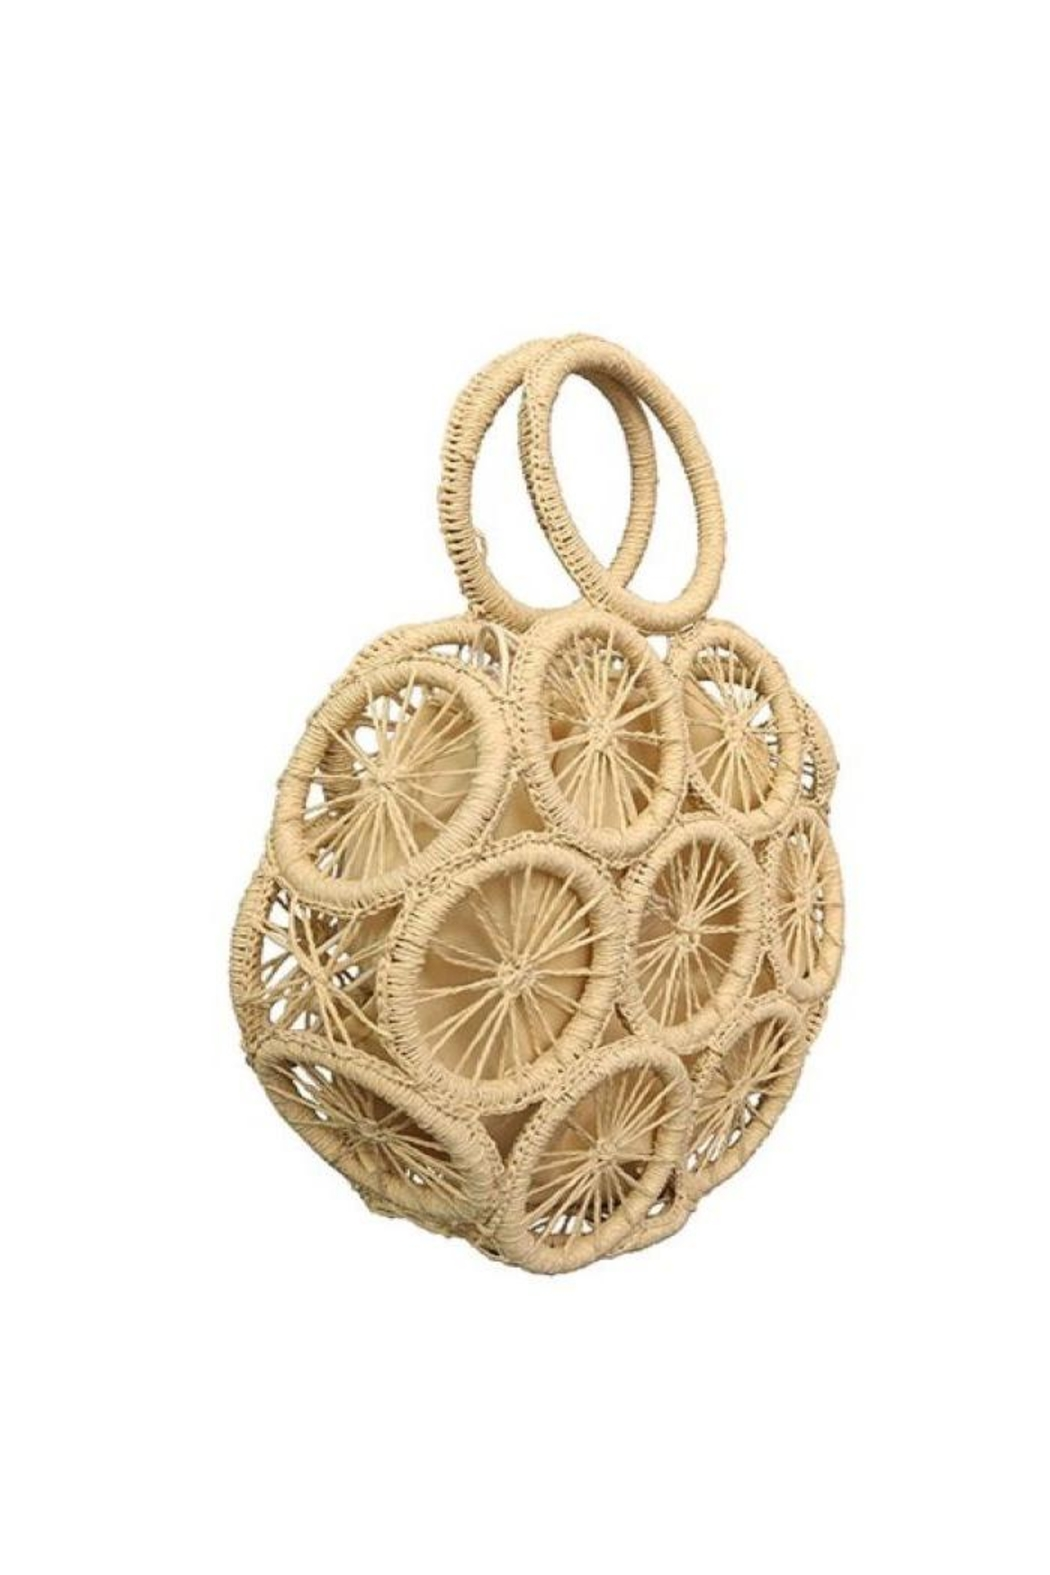 AKAIV Round Rattan Tote Bag - Front Full Image